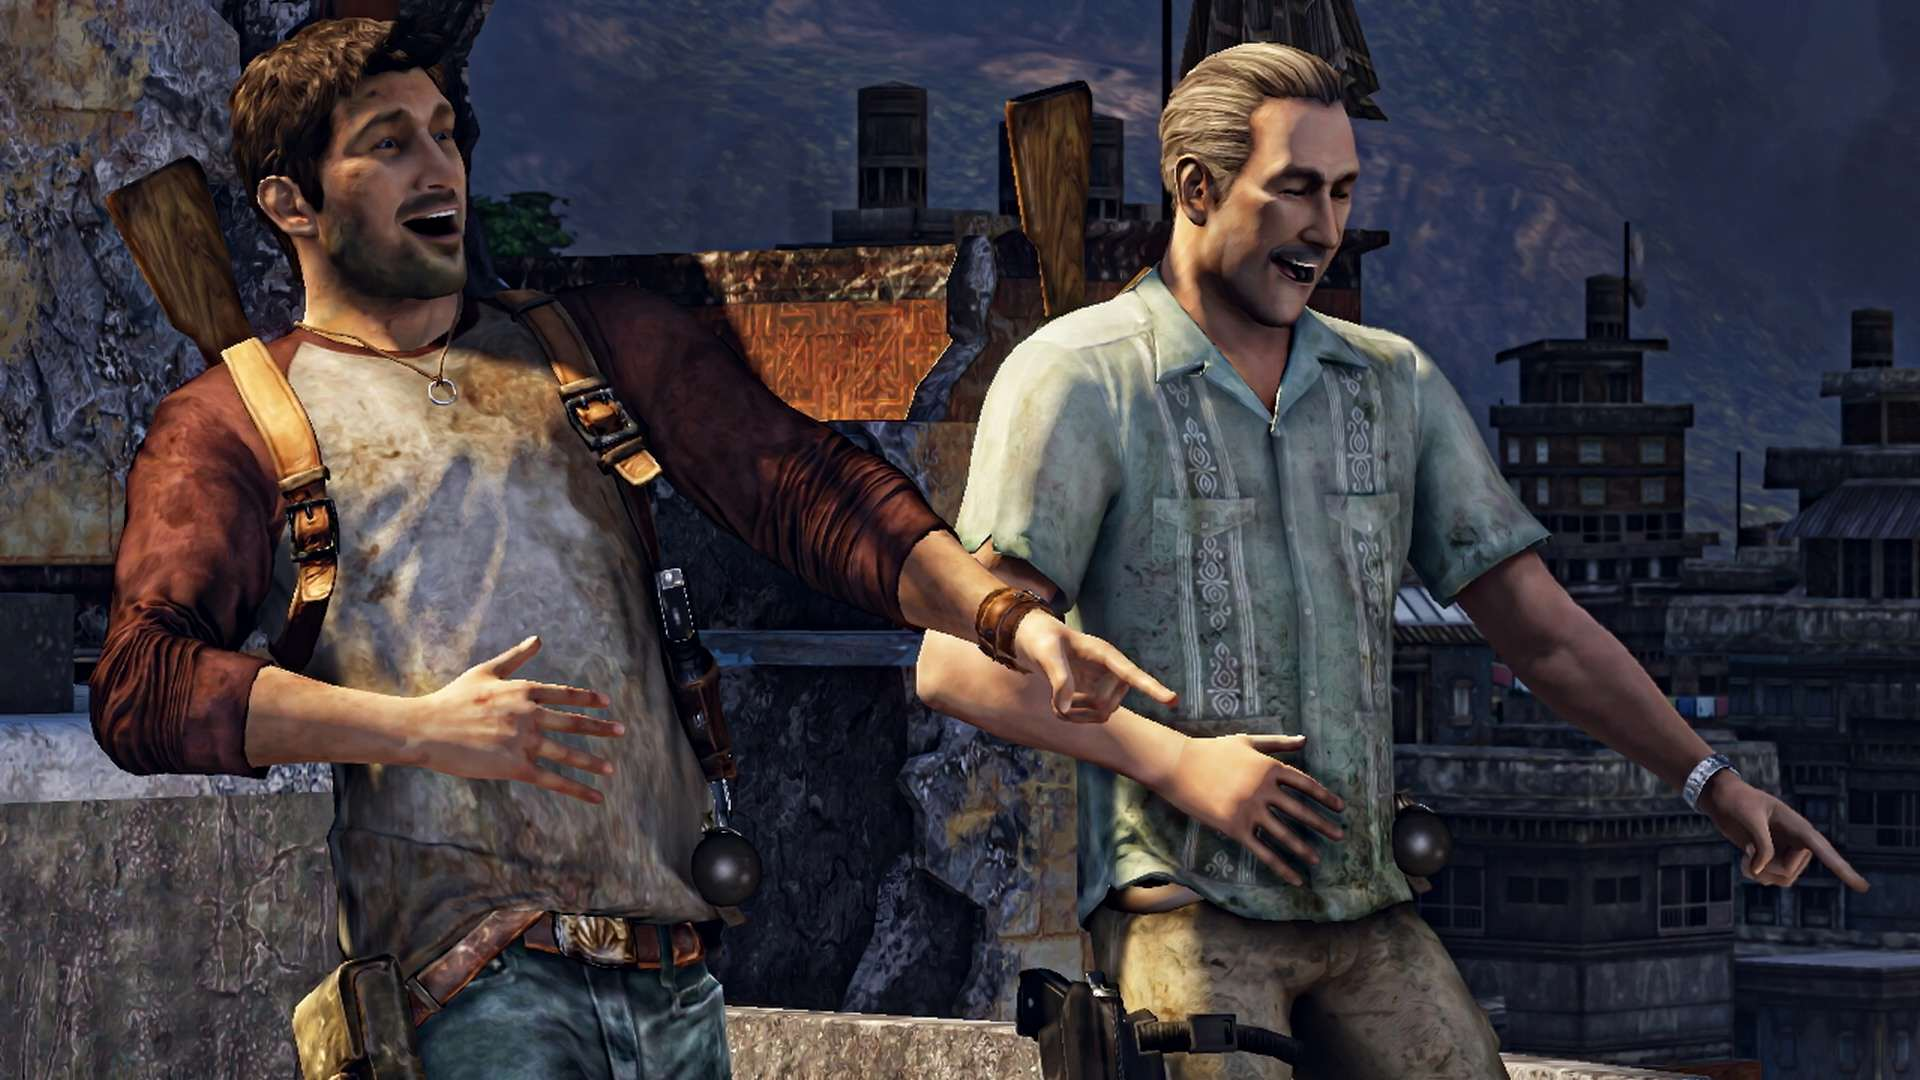 uncharted 2 multiplayer map the highrise 11 nathan sully 1449185608691 Who Should Play Drake In The Uncharted Movie?